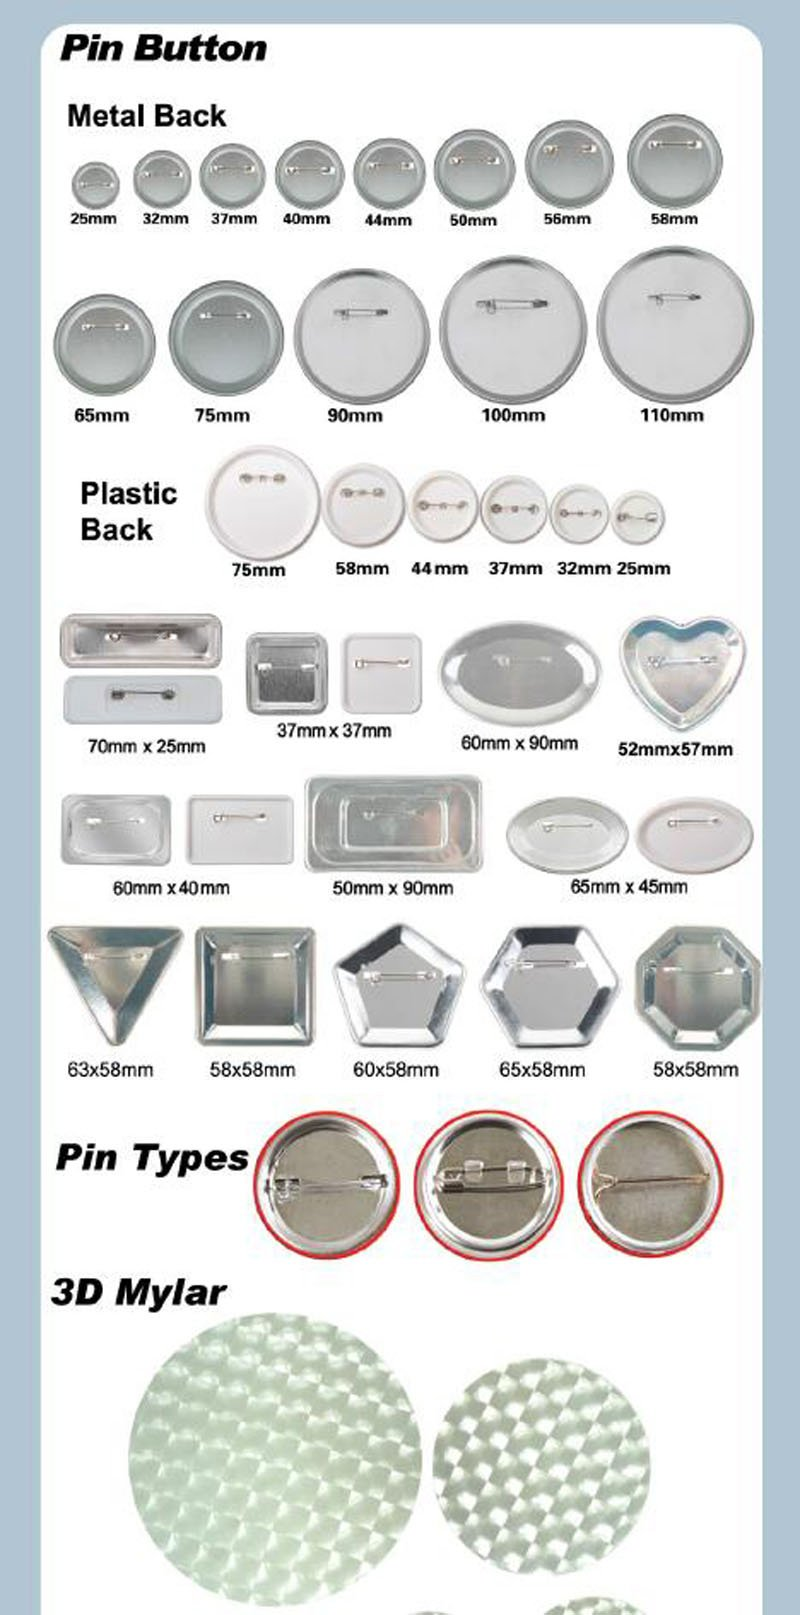 Mirror Keychain 58mm 2-1/4'' Supplies 100sets for Pro Maker Machine Commerciadiy(item#015703)